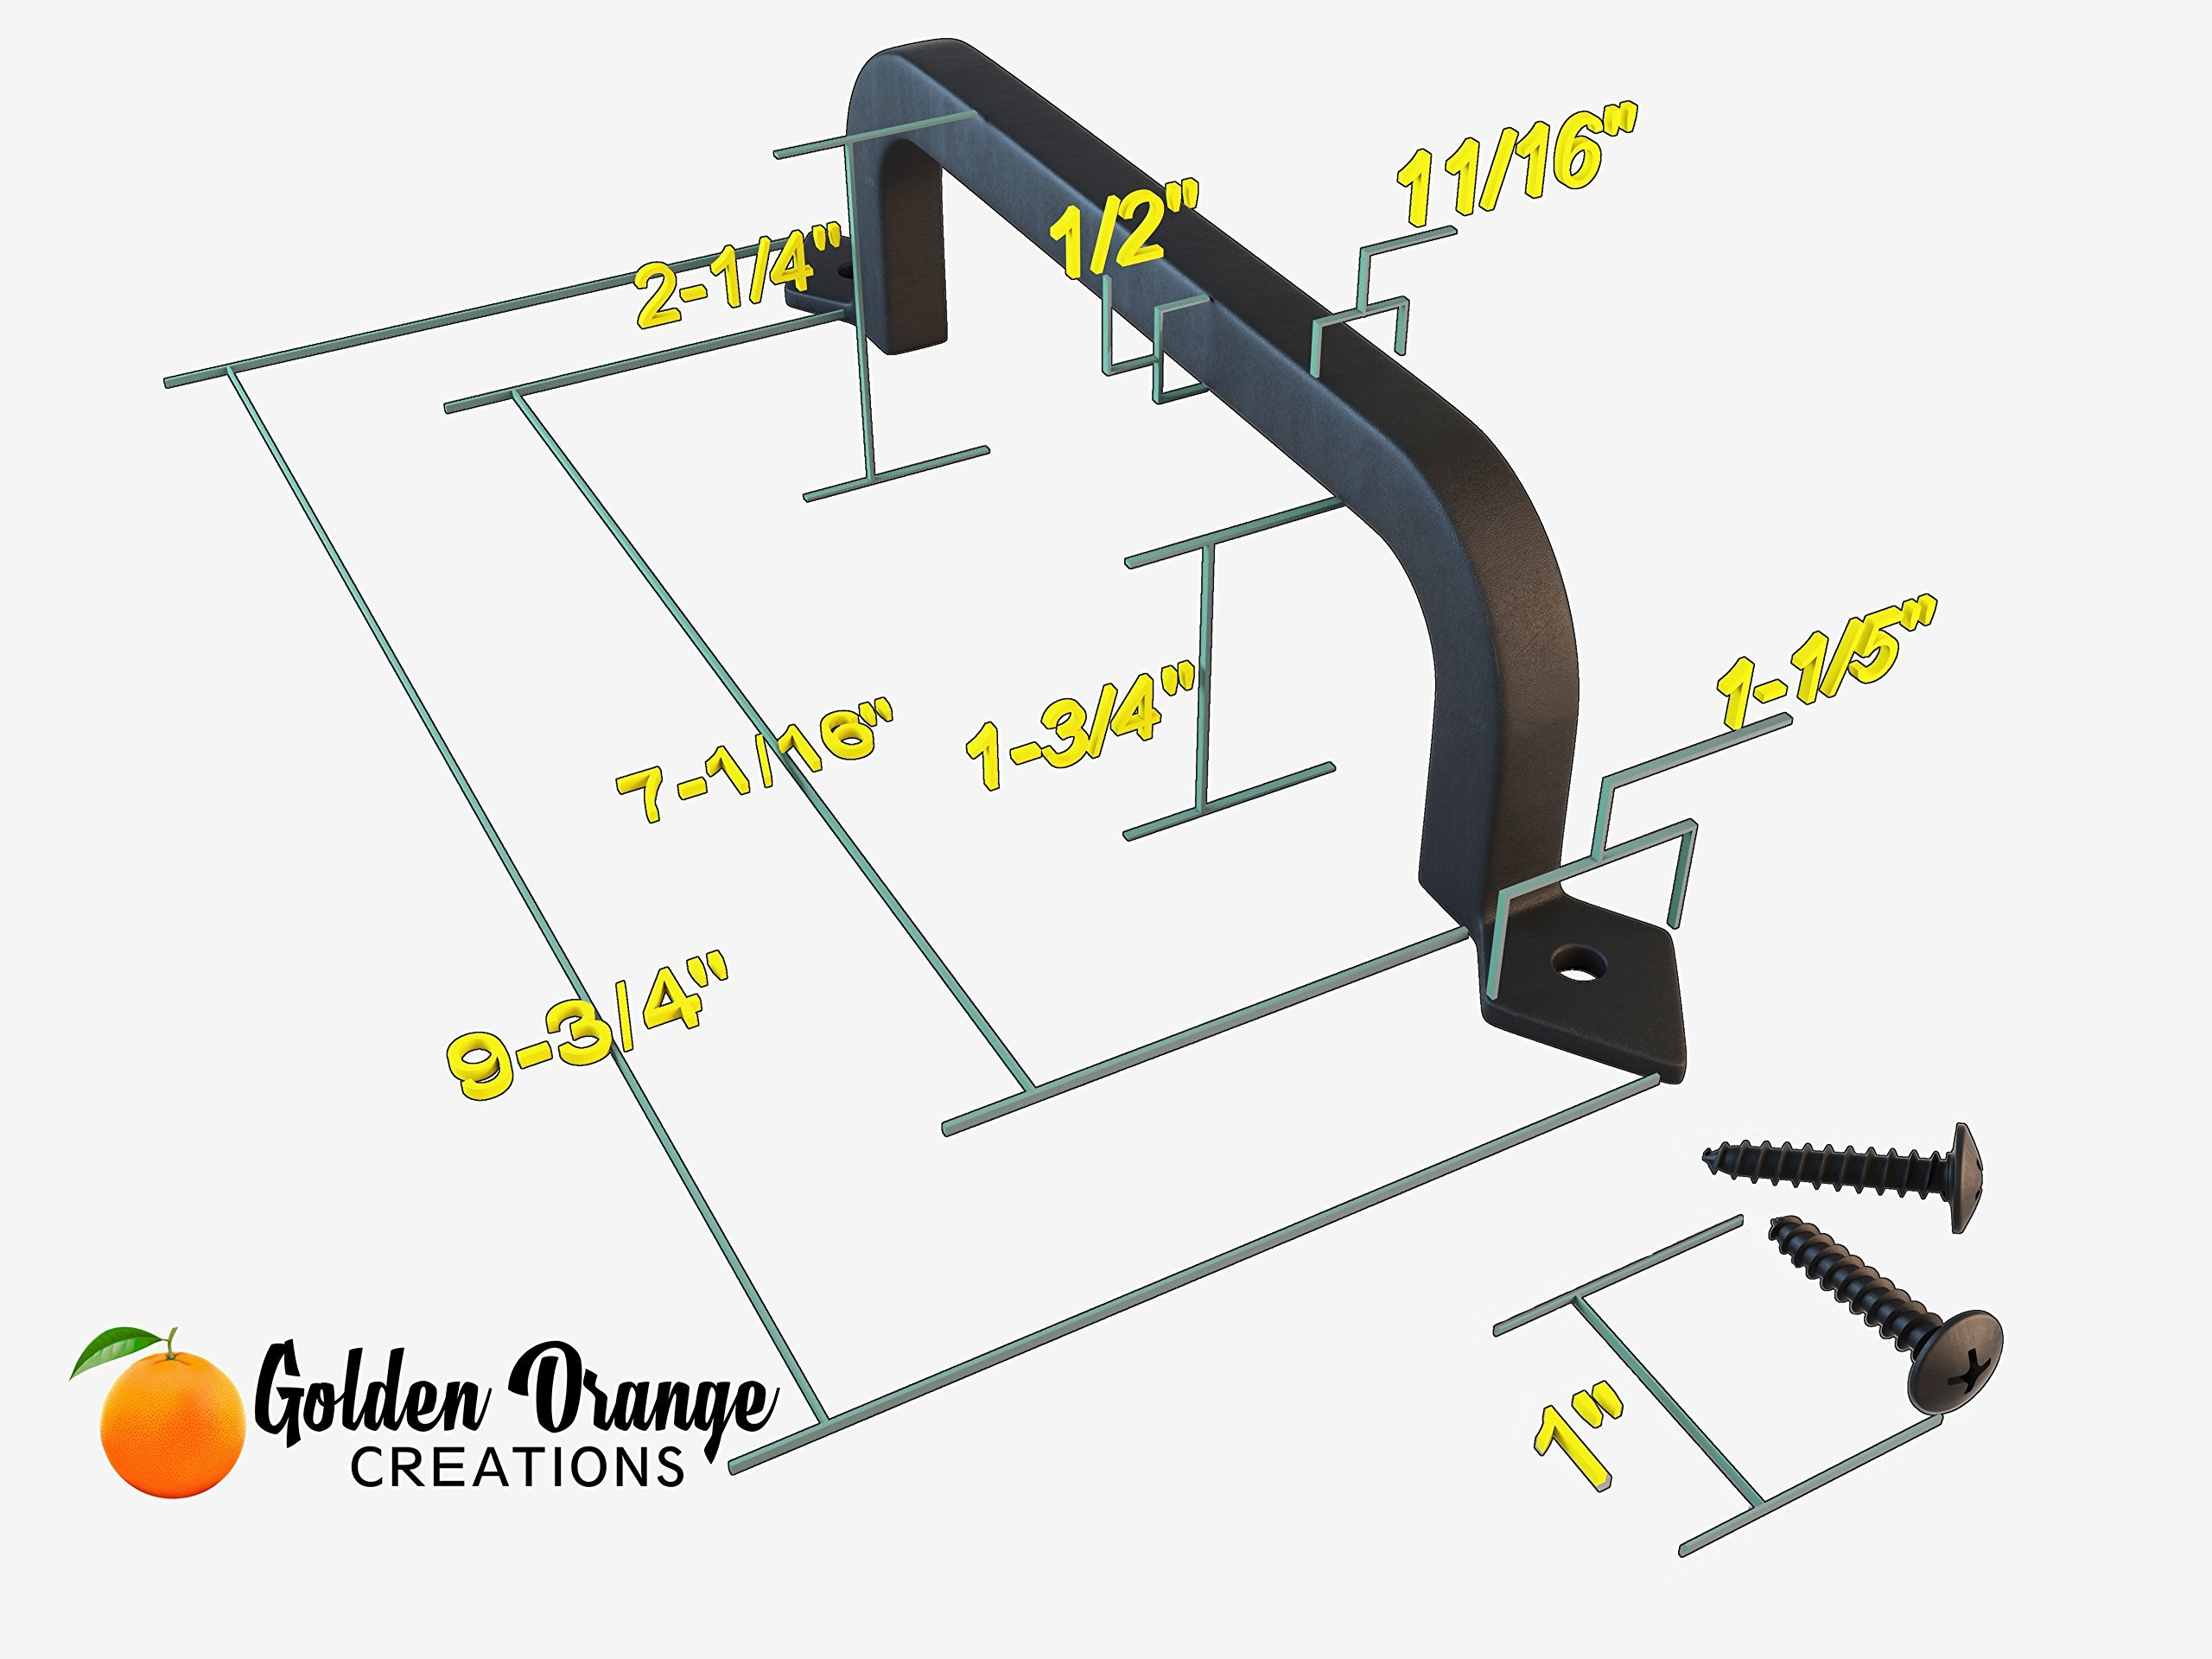 9-3/4'' Antique Barn Door Pull Handle with 2 Matching Black Screws - for Custom and Luxury Sliding Barn Doors, Pantry, Closet, Furniture, Garage, Gate, Shed - Solid Cast Iron Hardware Handle by Golden Orange Creations (Image #6)